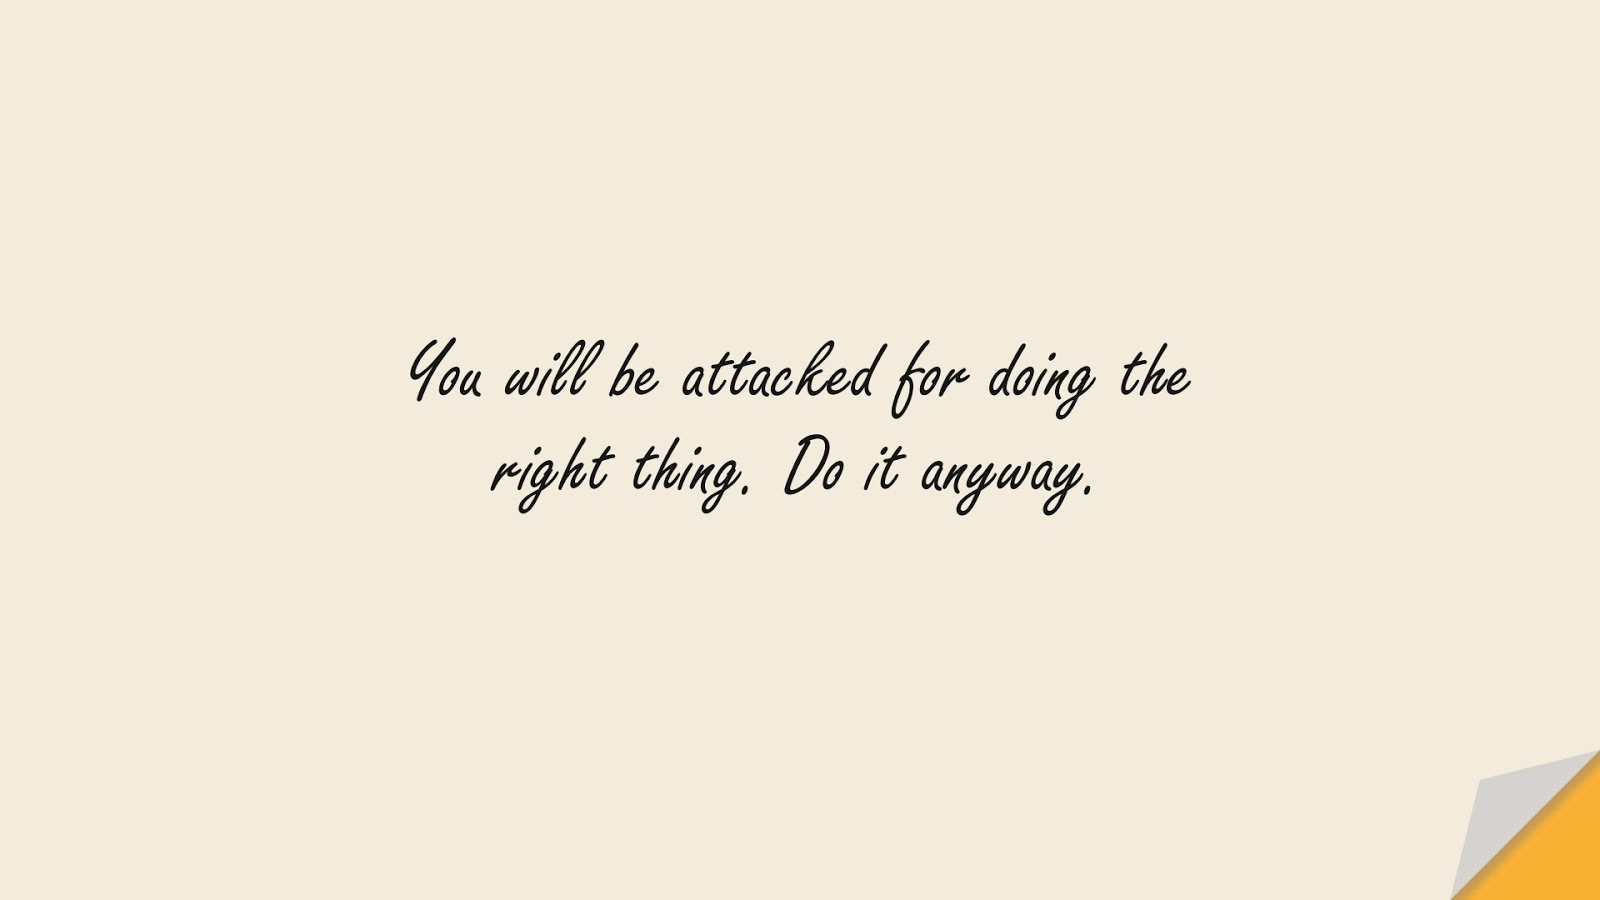 You will be attacked for doing the right thing. Do it anyway.FALSE